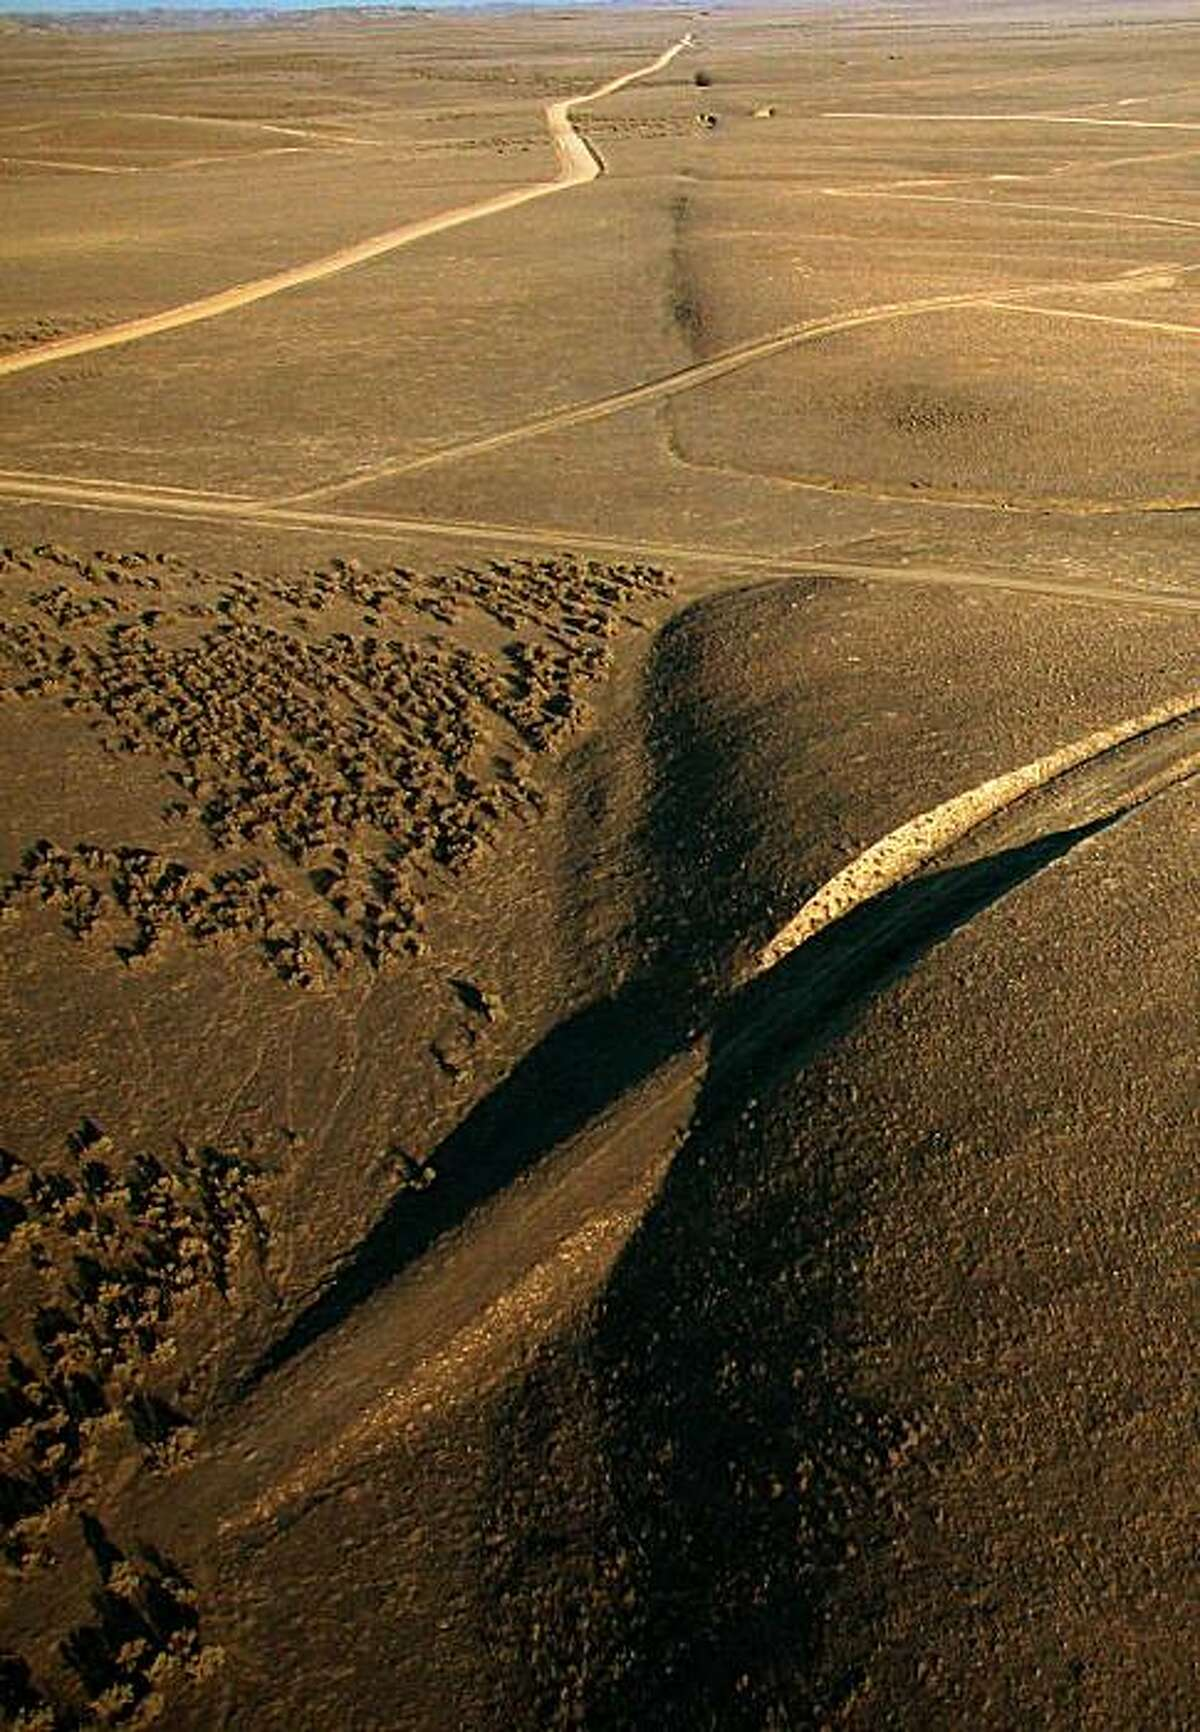 A view looking southeast along the surface trace of the San Andreas fault in the Carrizo Plain area of California.